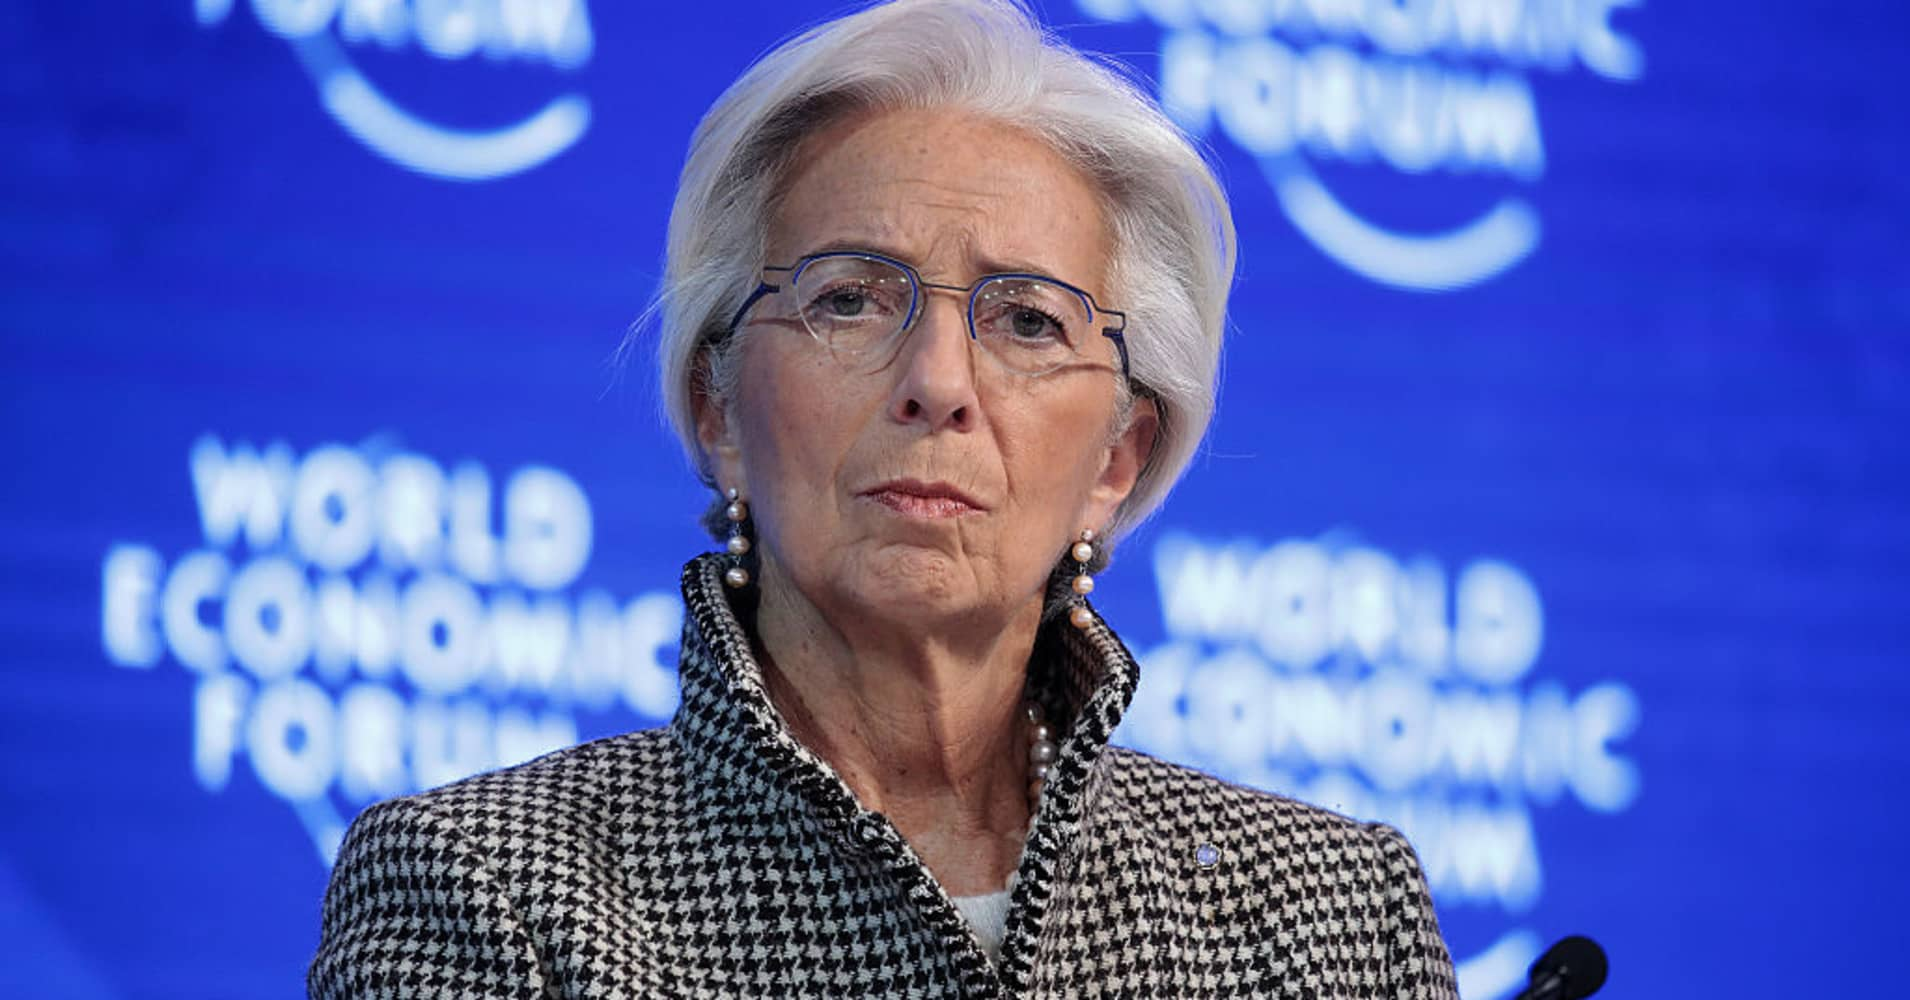 IMF's Lagarde says a China slowdown, if fast, would constitute a real risk